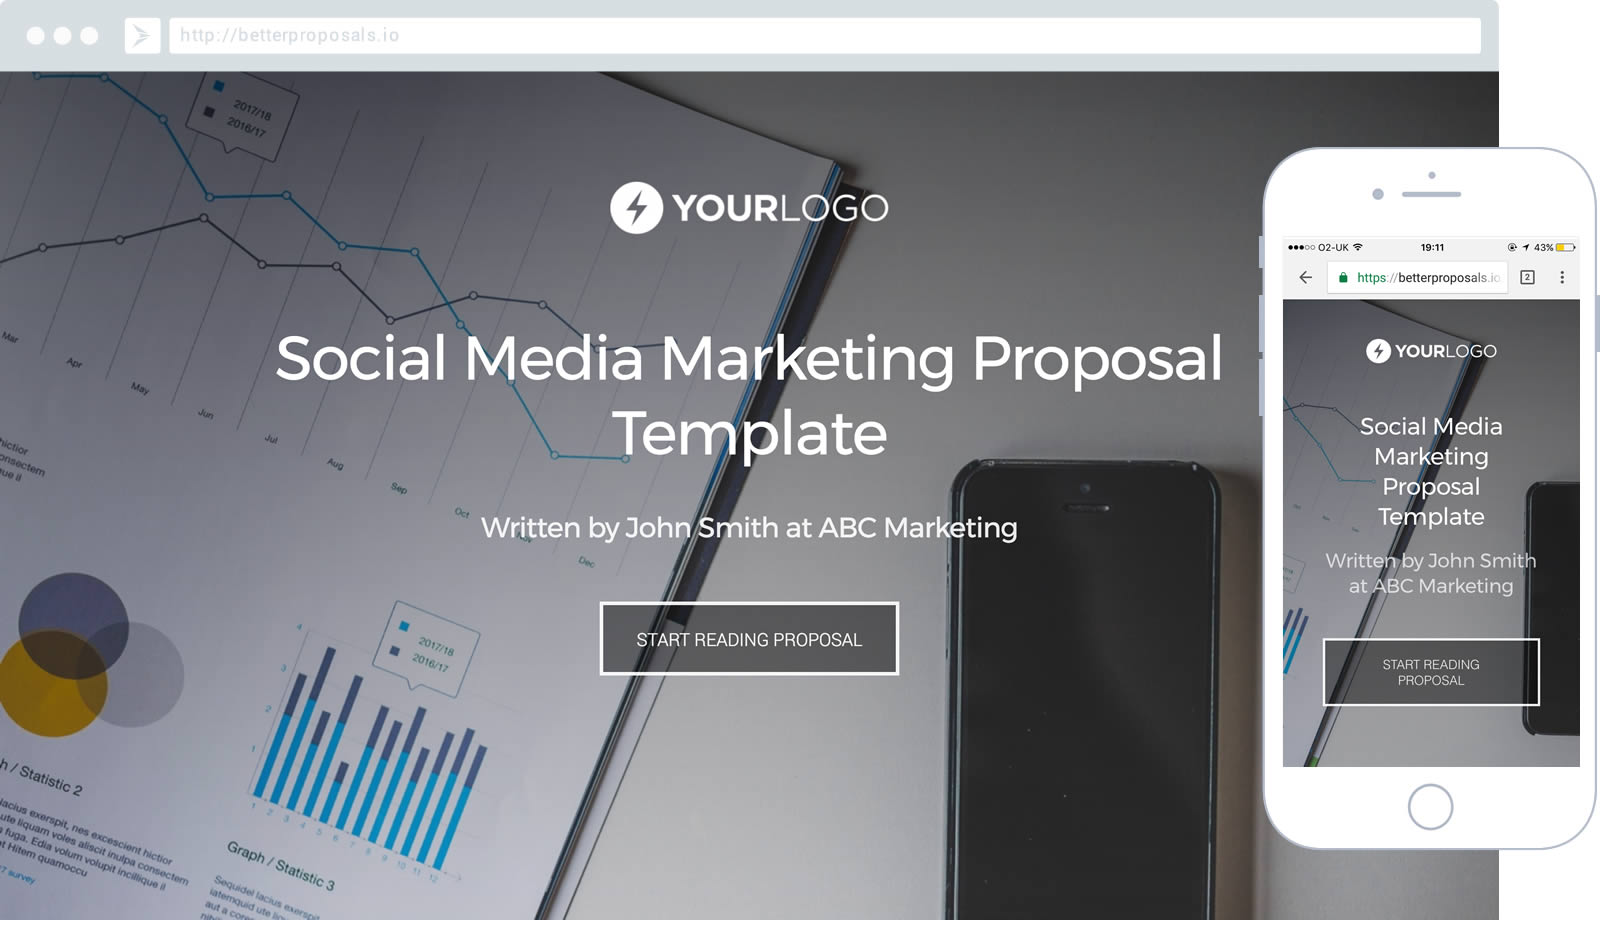 Social Media Marketing Proposal Template Proposal Template For Any Social  Media Marketer.